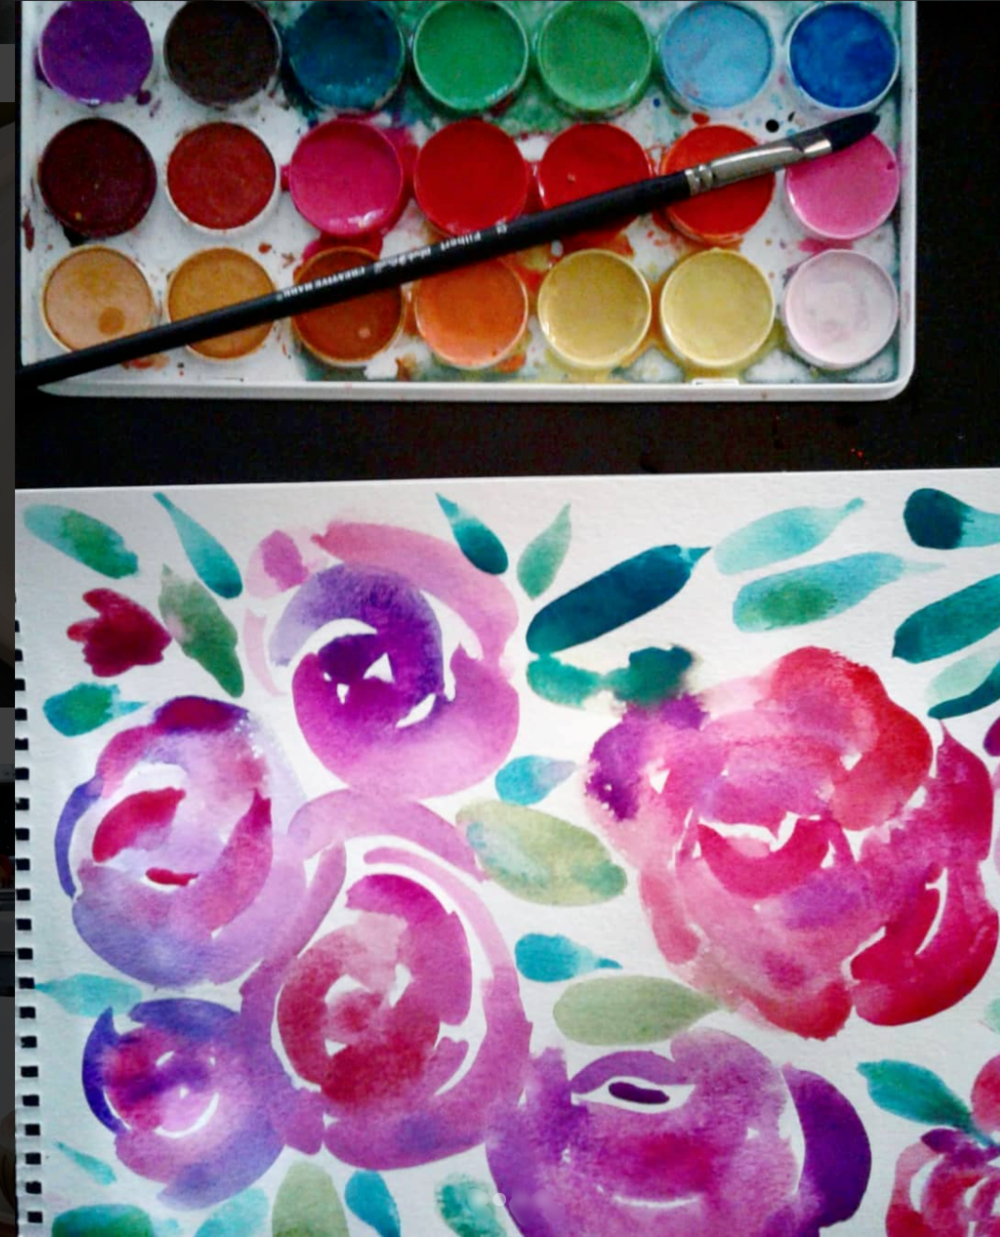 Loose watercolor gouache floral painting in pink, purple, magenta and red roses with emerald green leaves for a porcelain bowl.